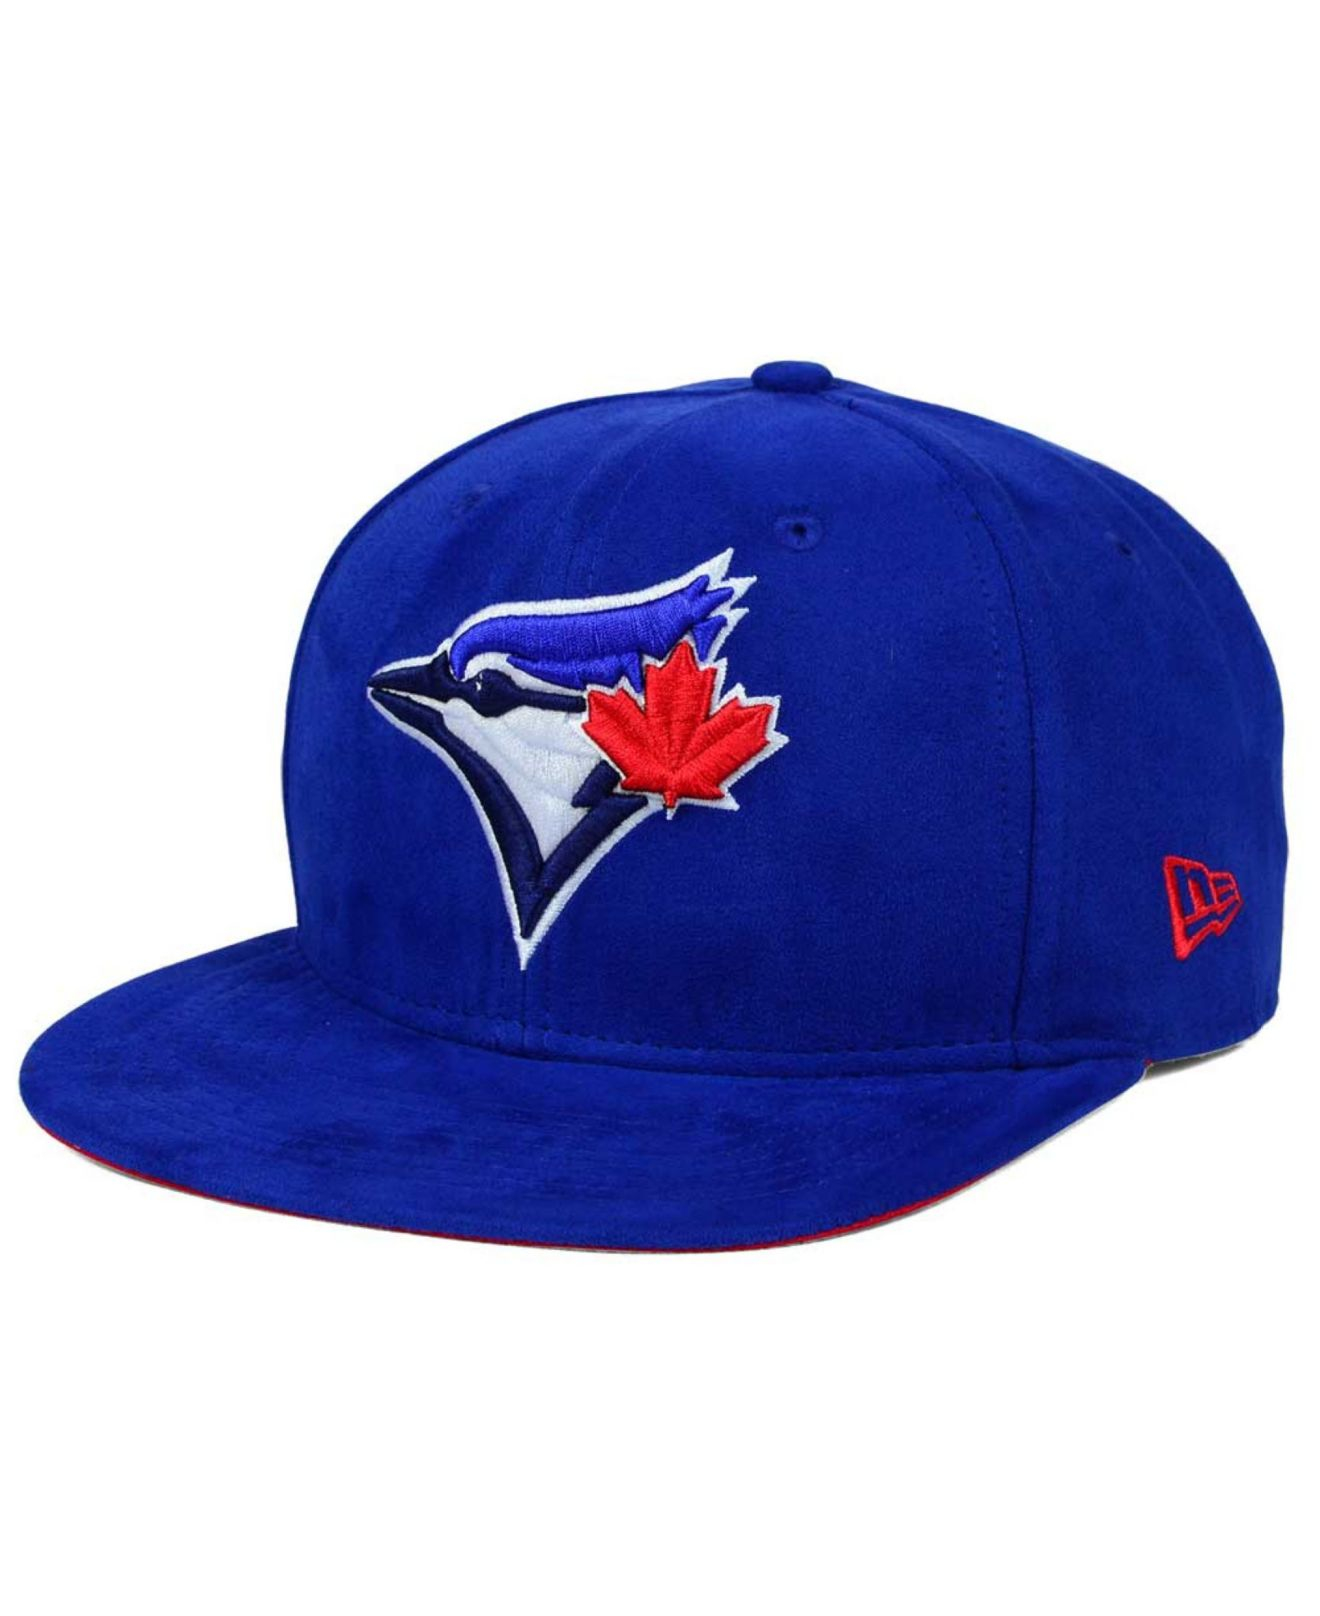 41d52a46202 Lyst - KTZ Toronto Blue Jays Suede Collection 9fifty Strapback Cap ...